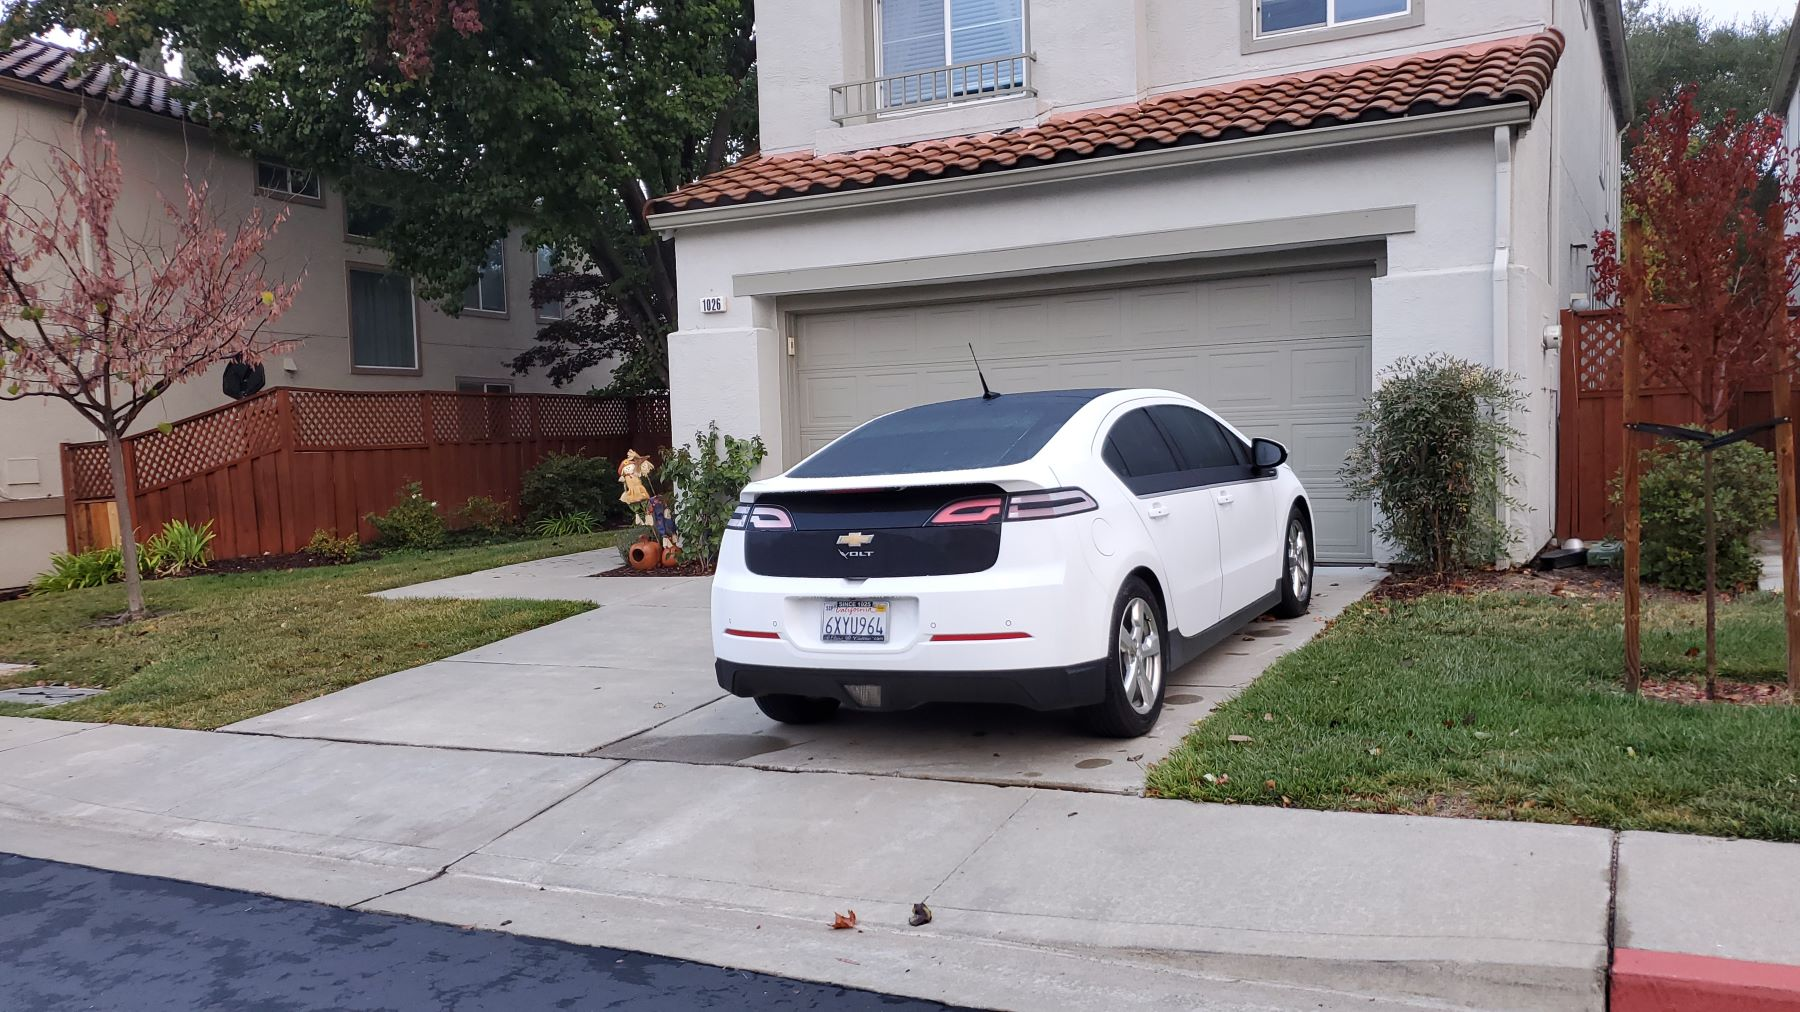 A Chevrolet Volt EV model parked outside the garage of a suburban home